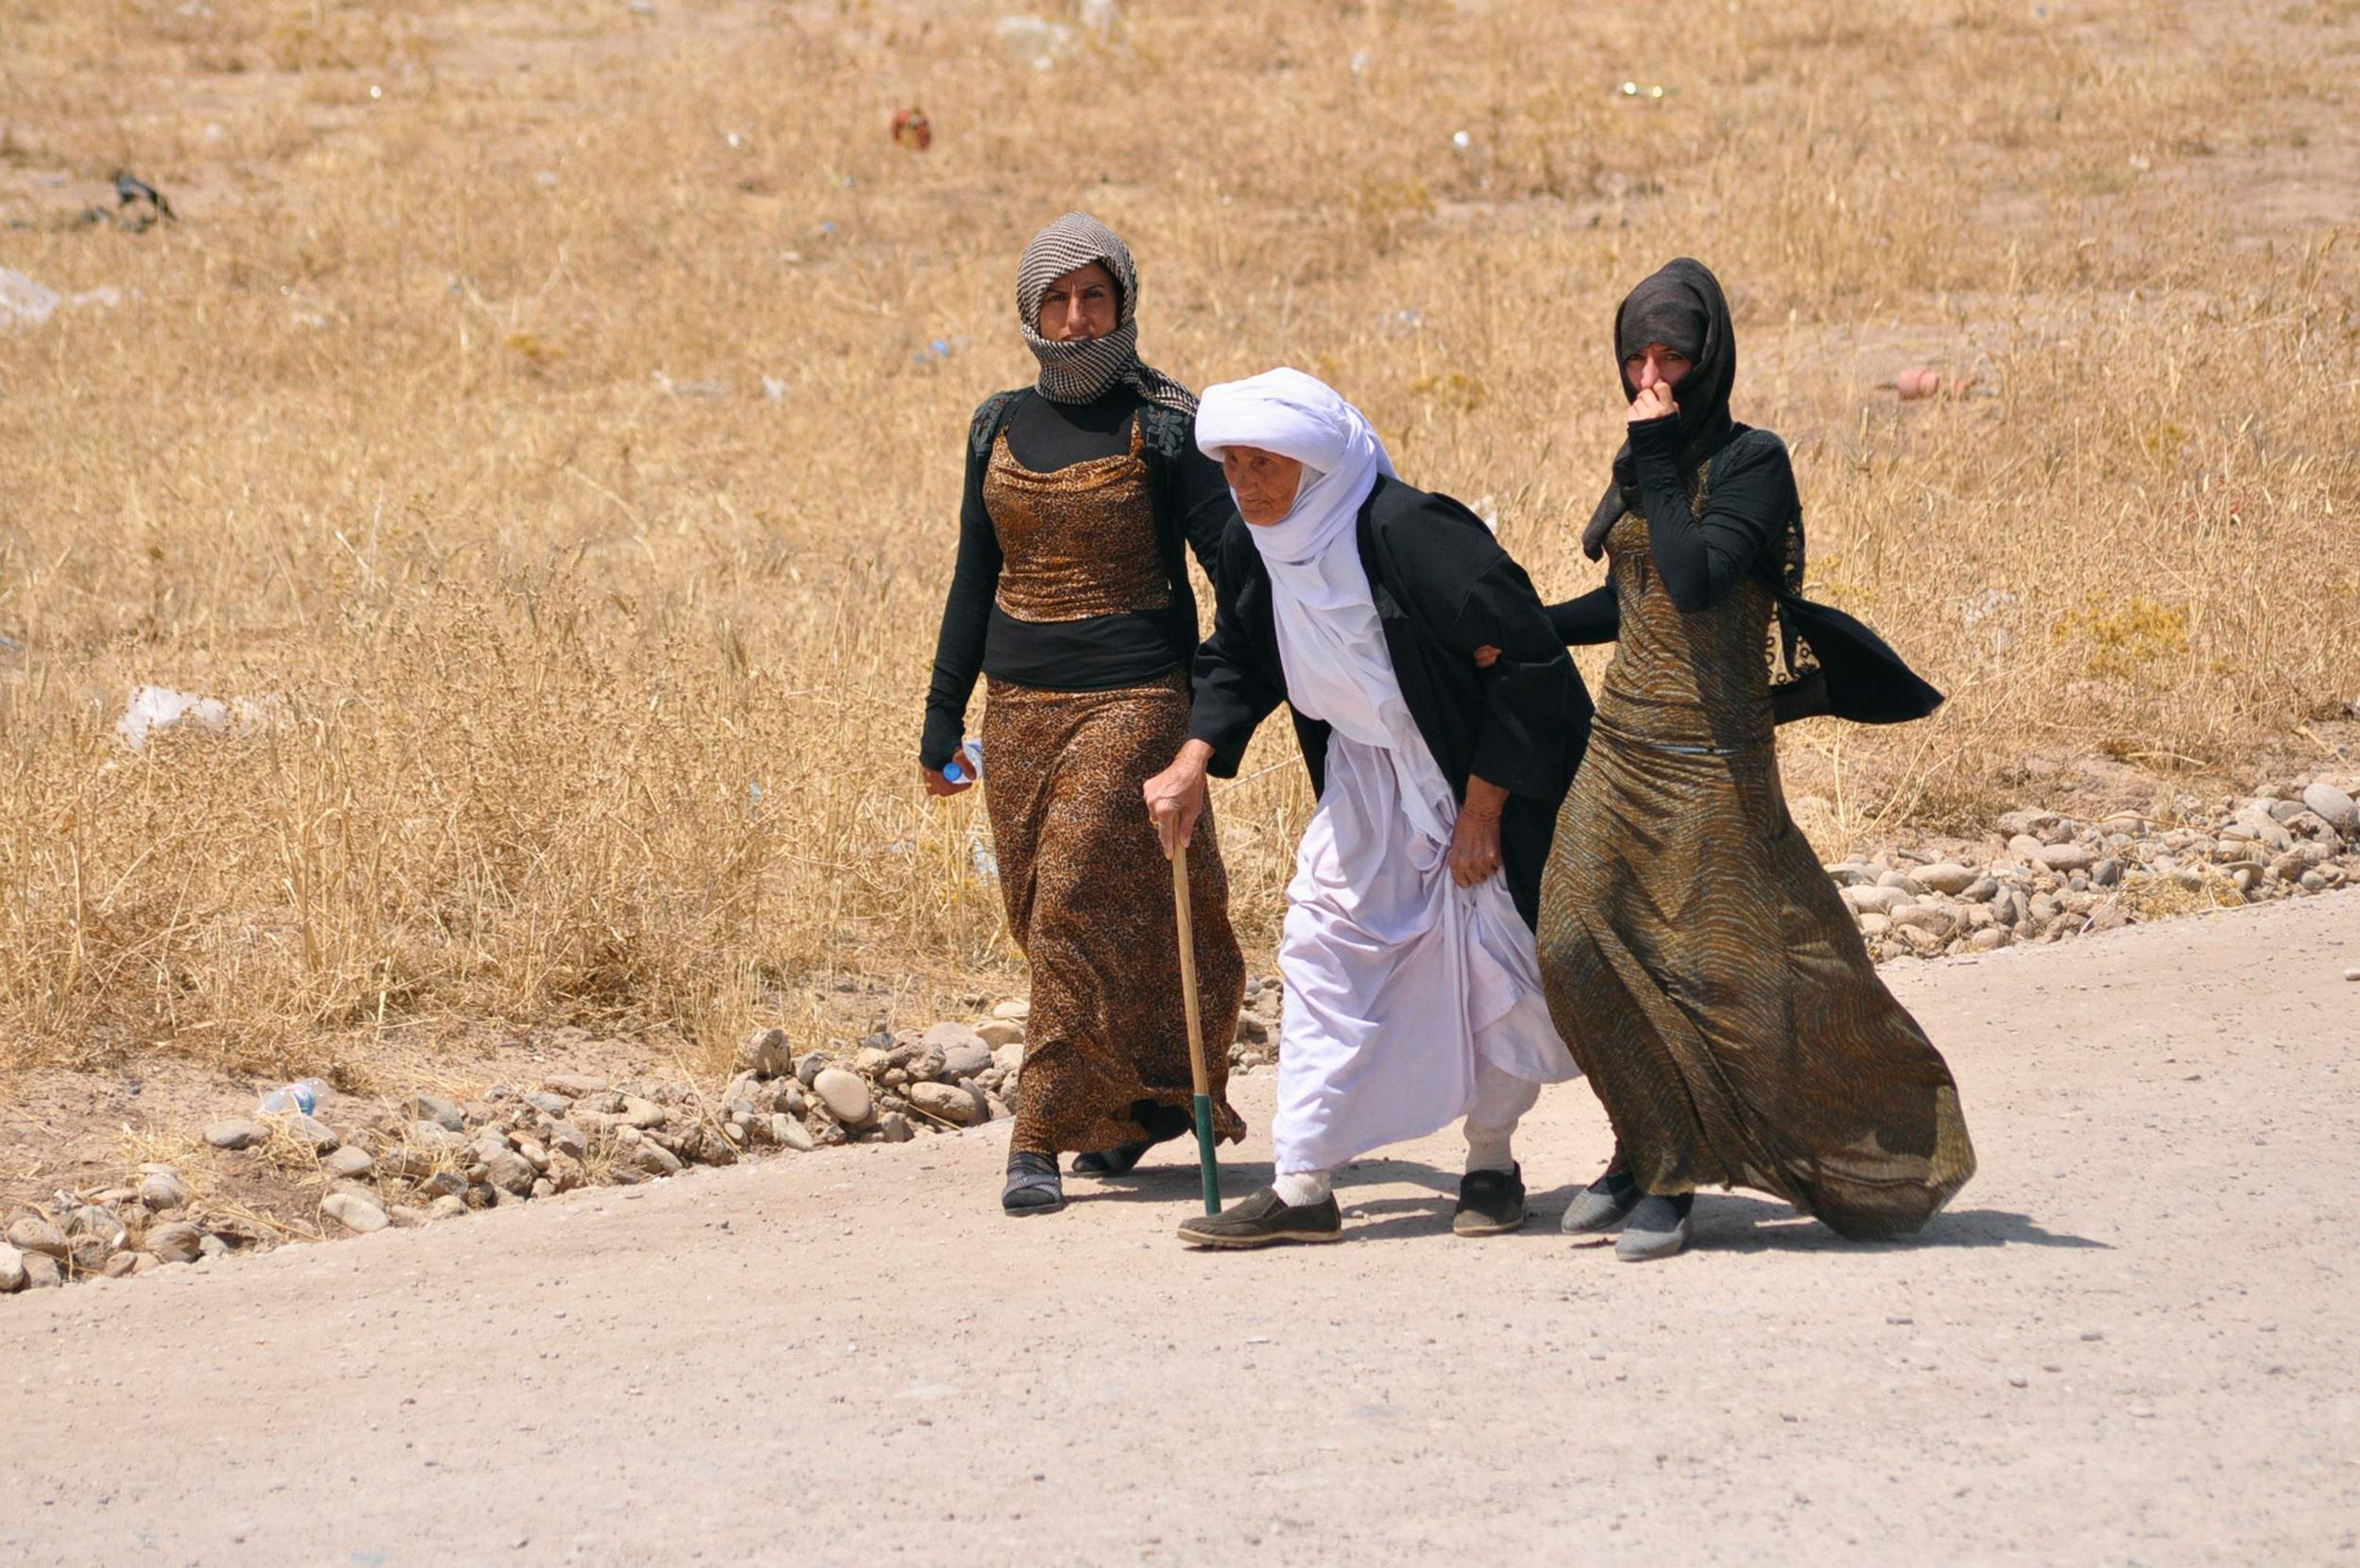 Image: Displaced families from the minority Yazidi sect, fleeing the violence, walk on the outskirts of Sinjar, west of Mosul